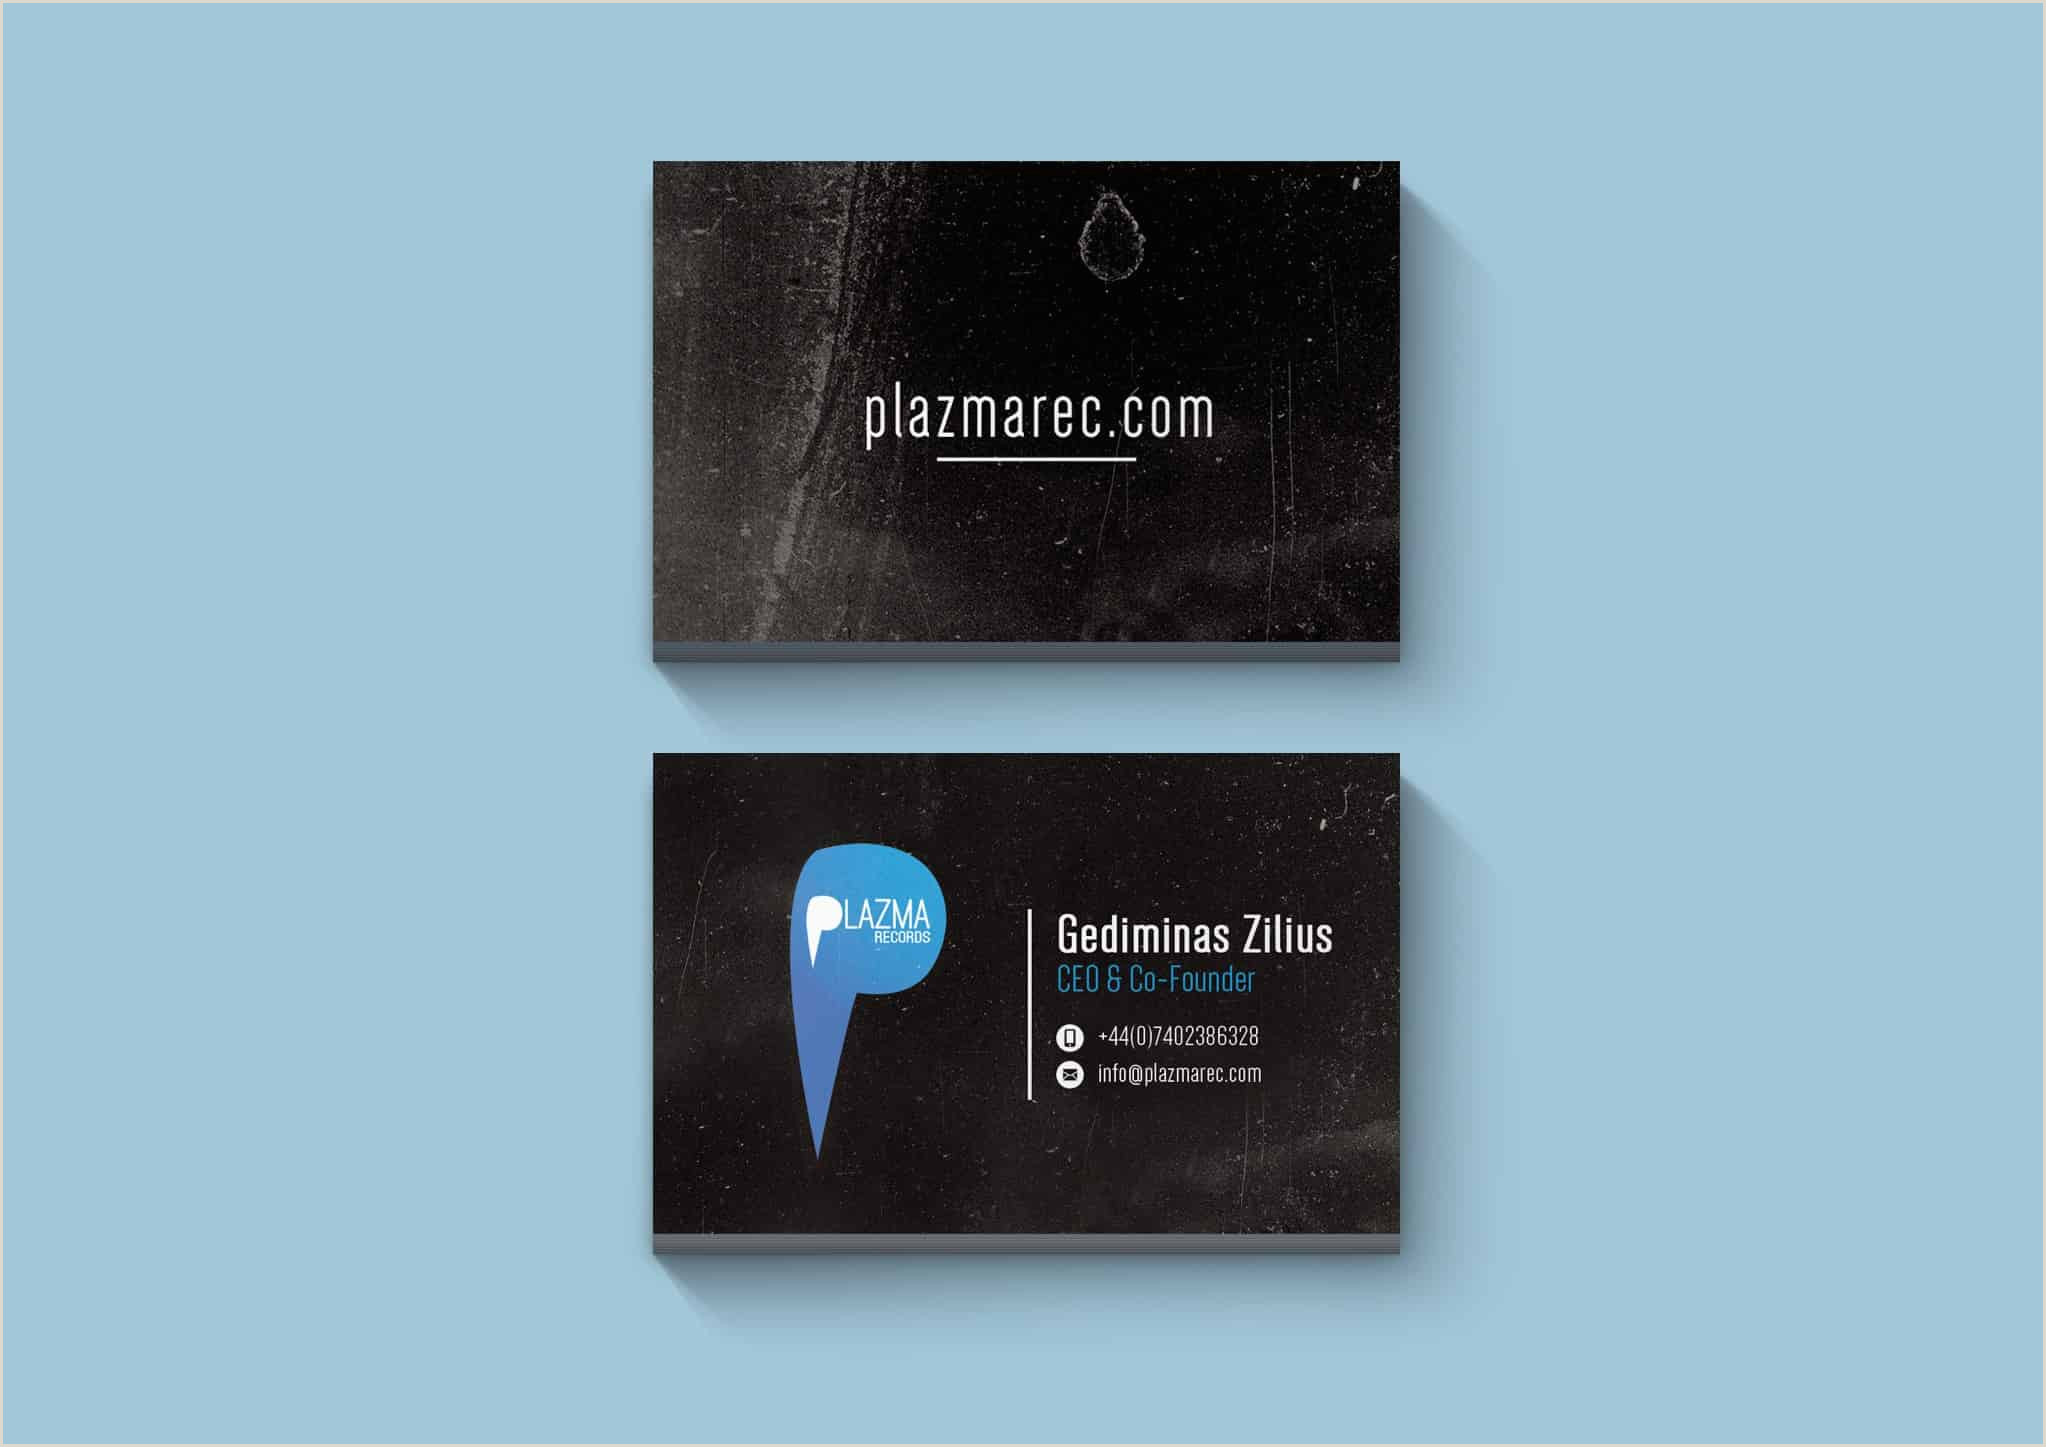 Local Business Cards Record Label Business Cards Pensandpieces